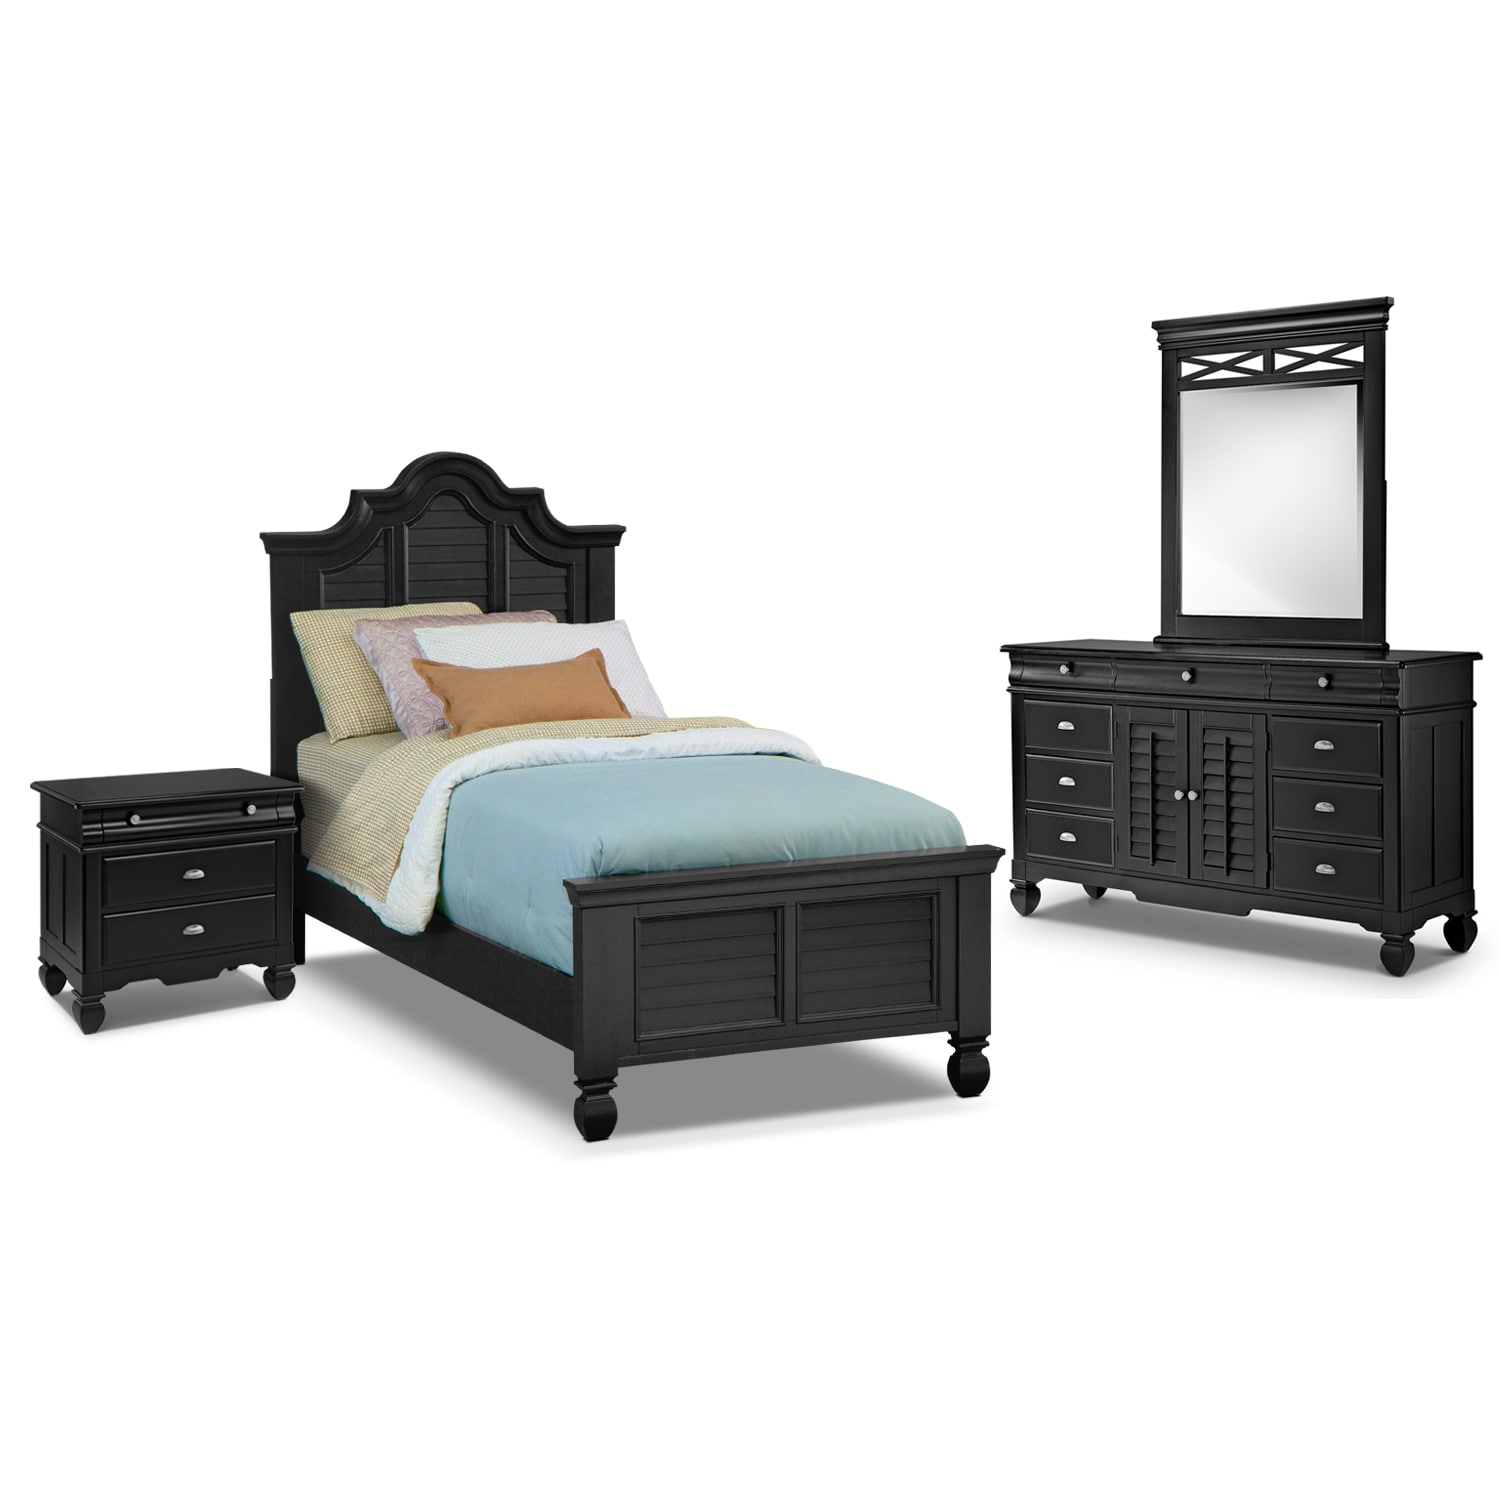 Kids Furniture - Plantation Cove 6-Piece Twin Bedroom Set - Black